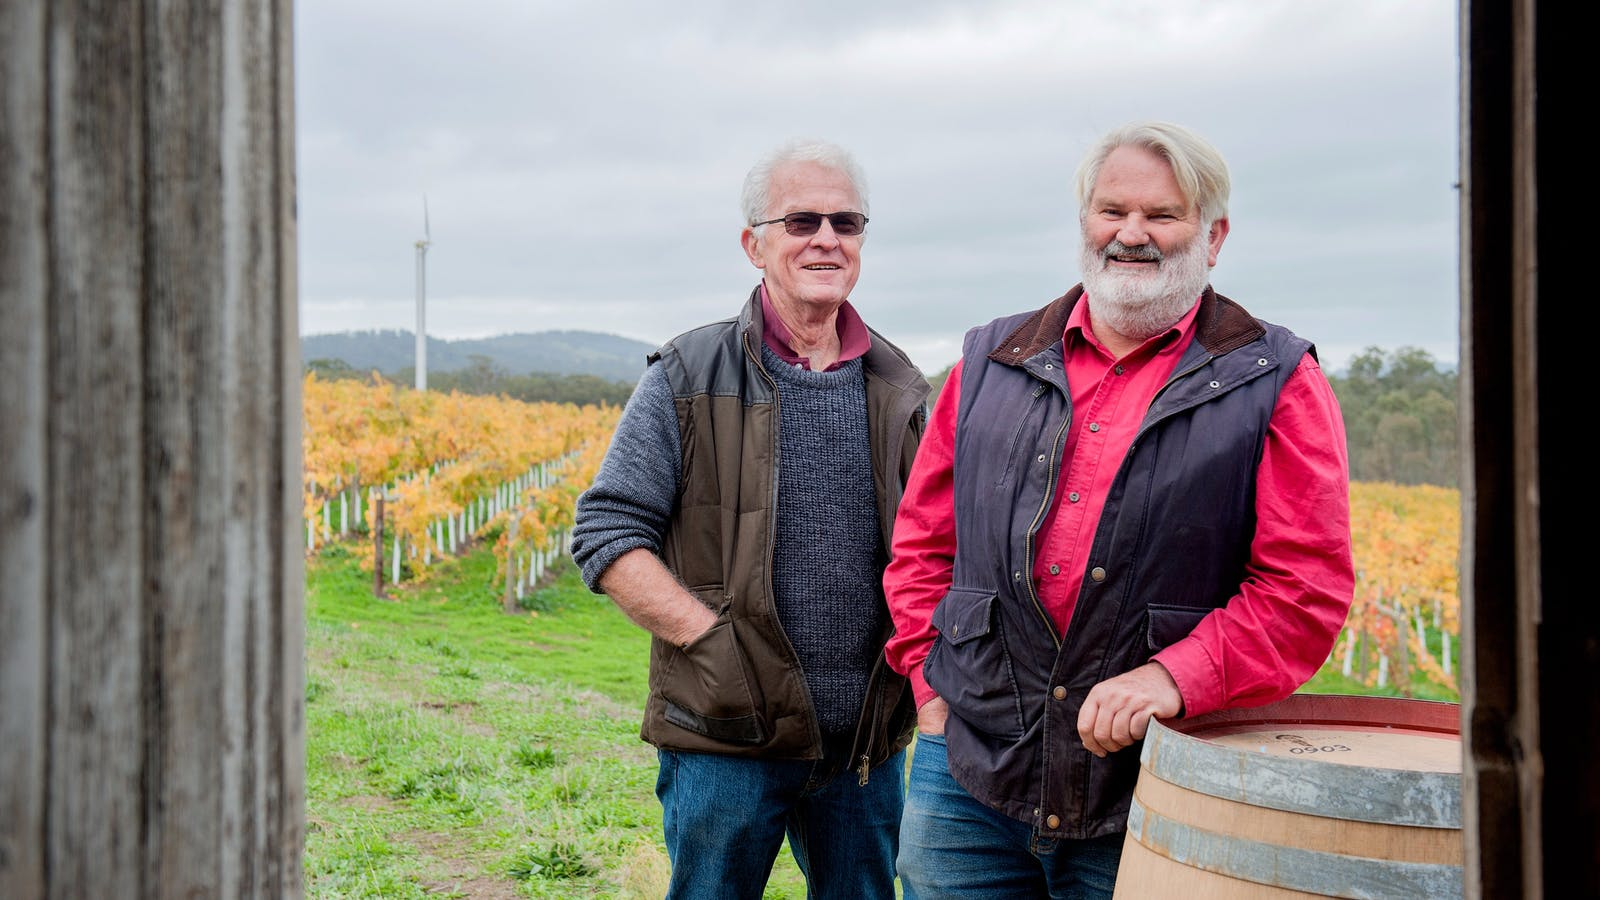 Ian McKenzie and Ken Pollock at Blackjack Vineyards